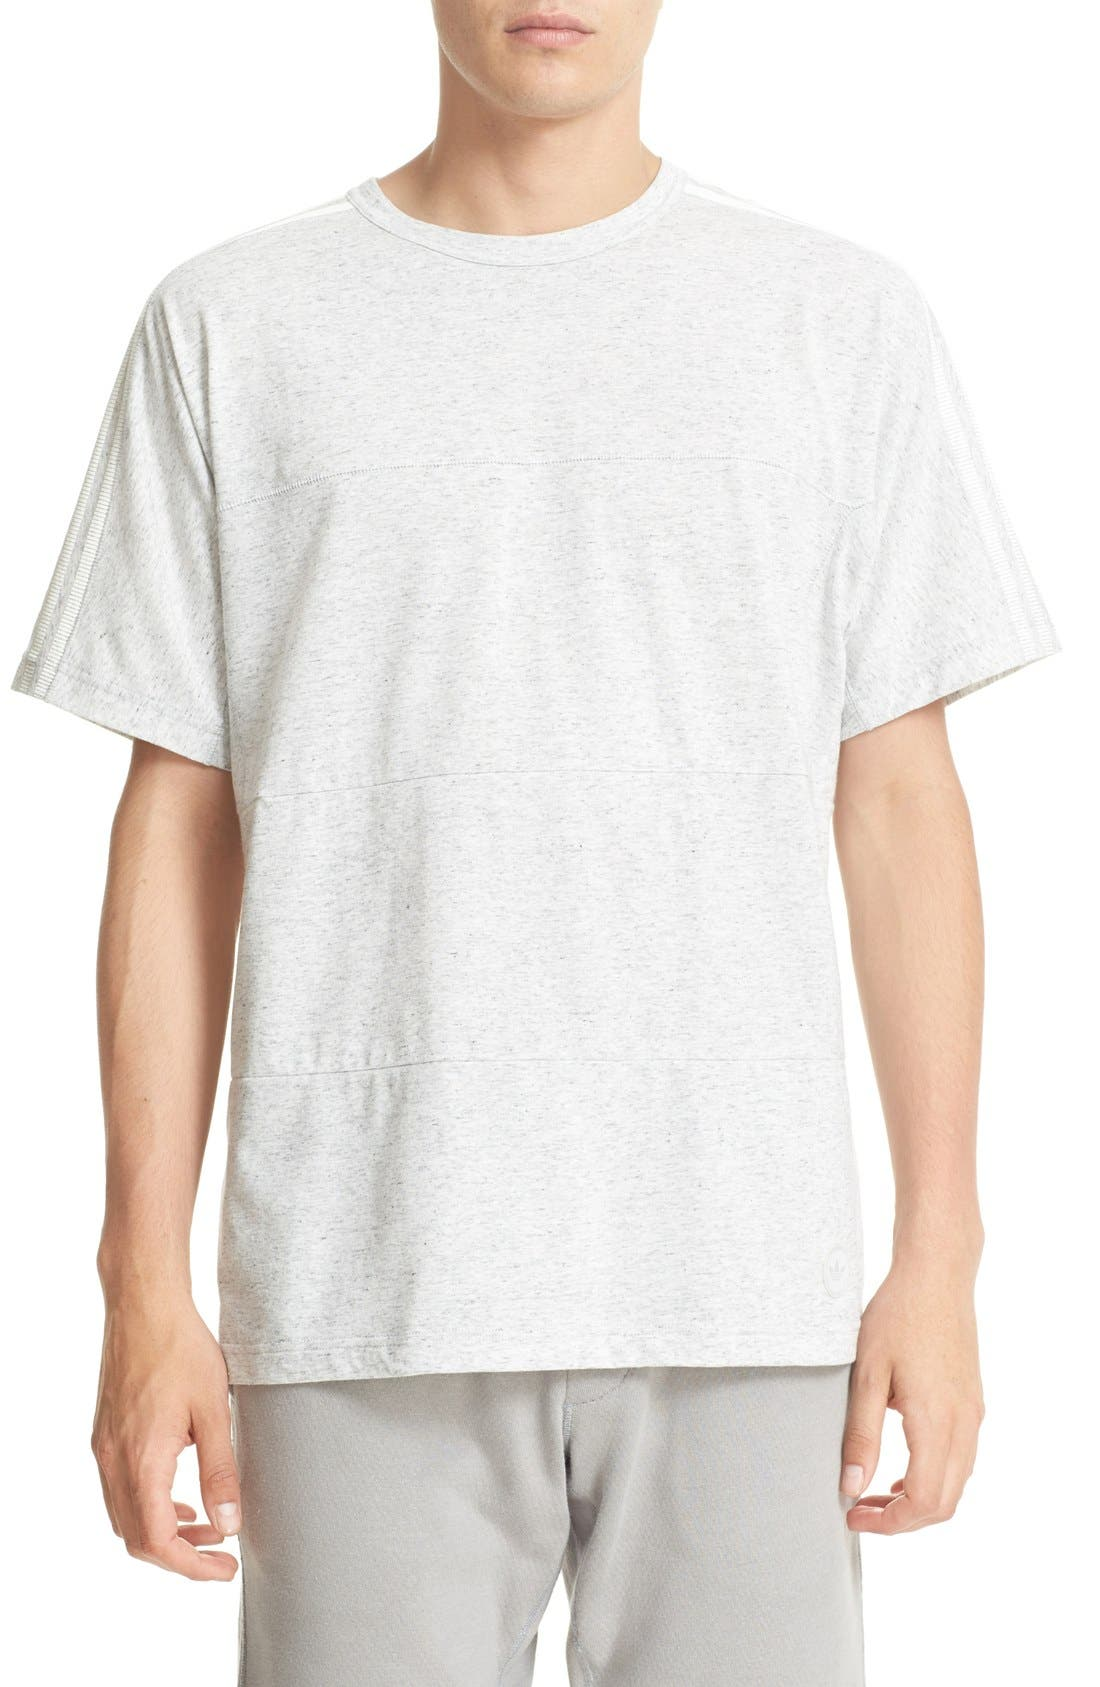 Main Image - wings + horns x adidas Cotton Blend T-Shirt